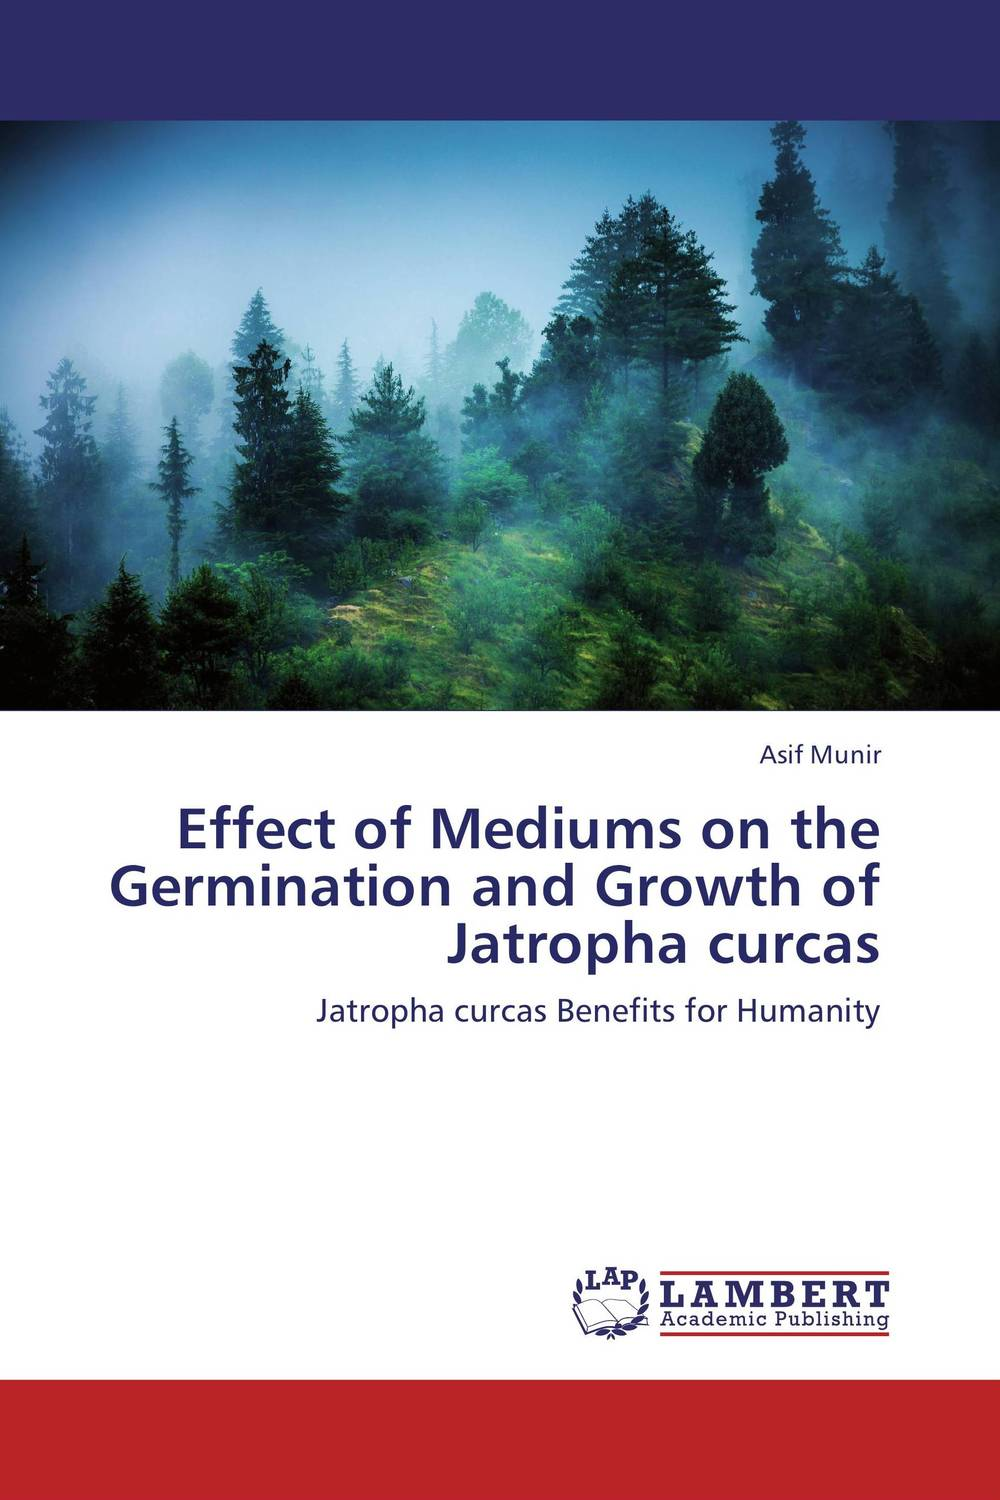 Effect of Mediums on the Germination and Growth of Jatropha curcas muhammad firdaus sulaiman estimation of carbon footprint in jatropha curcas seed production